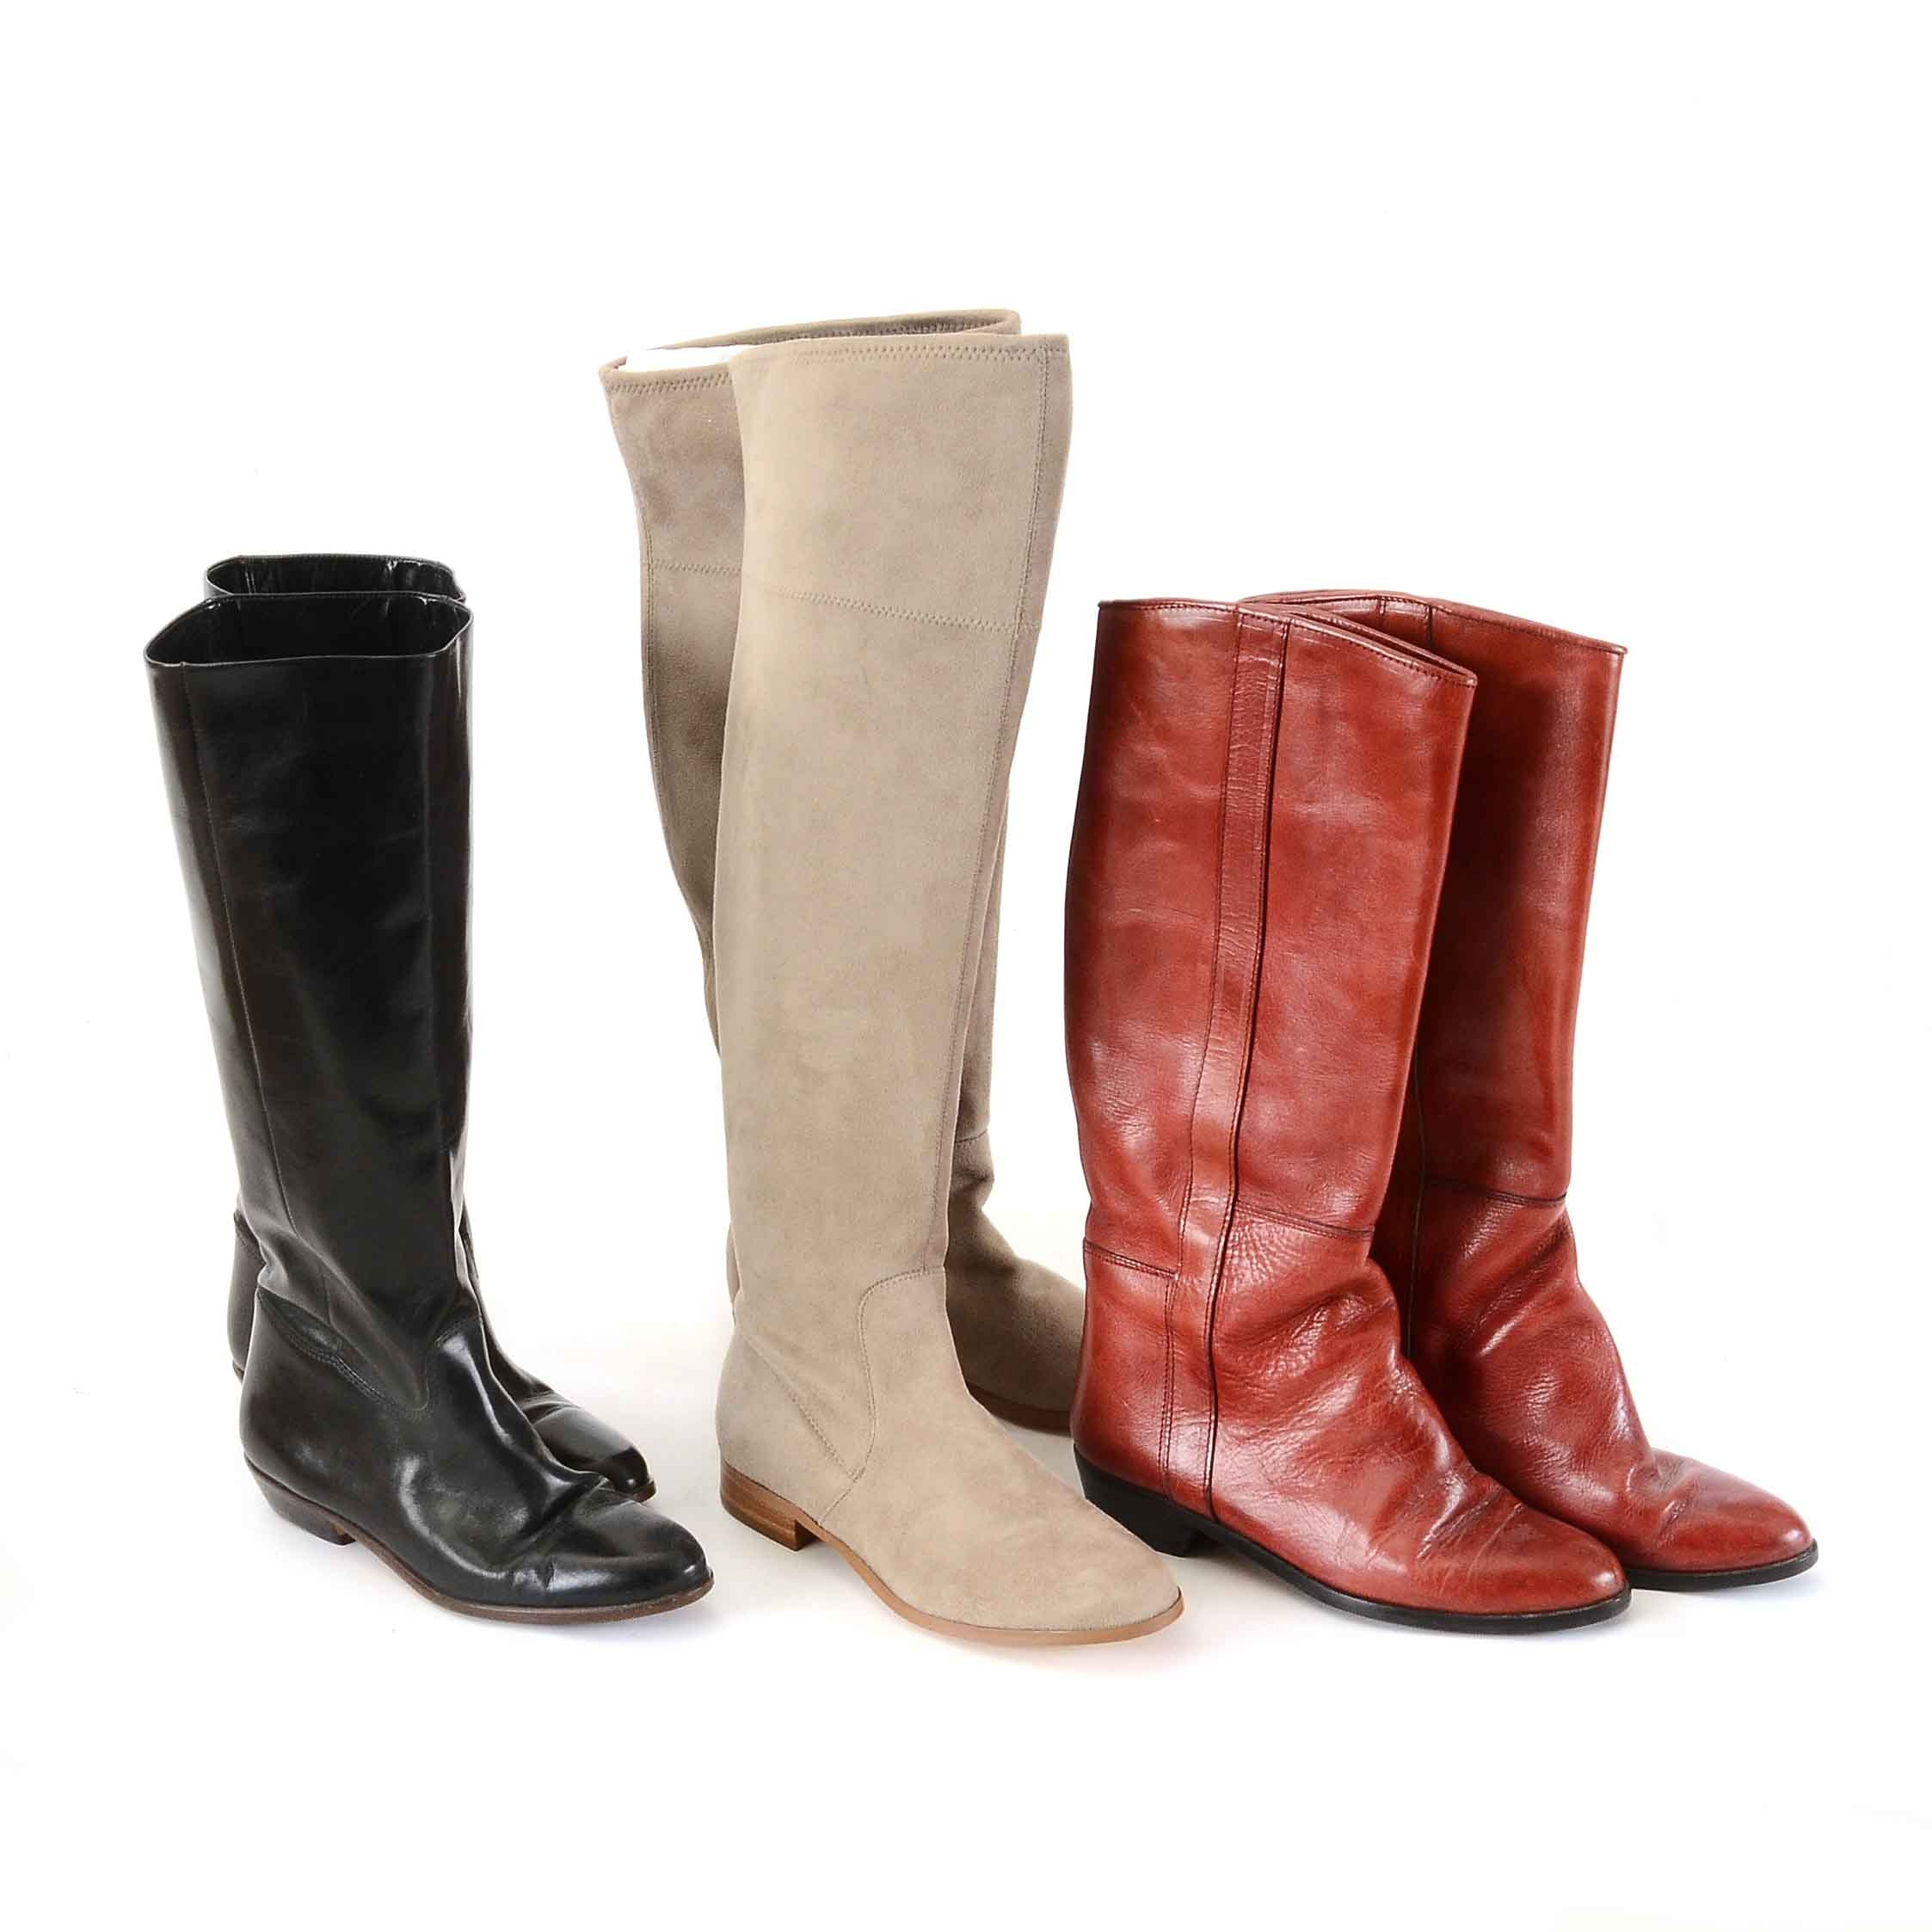 Collection of Women's Leather Boots including Calvin Klein